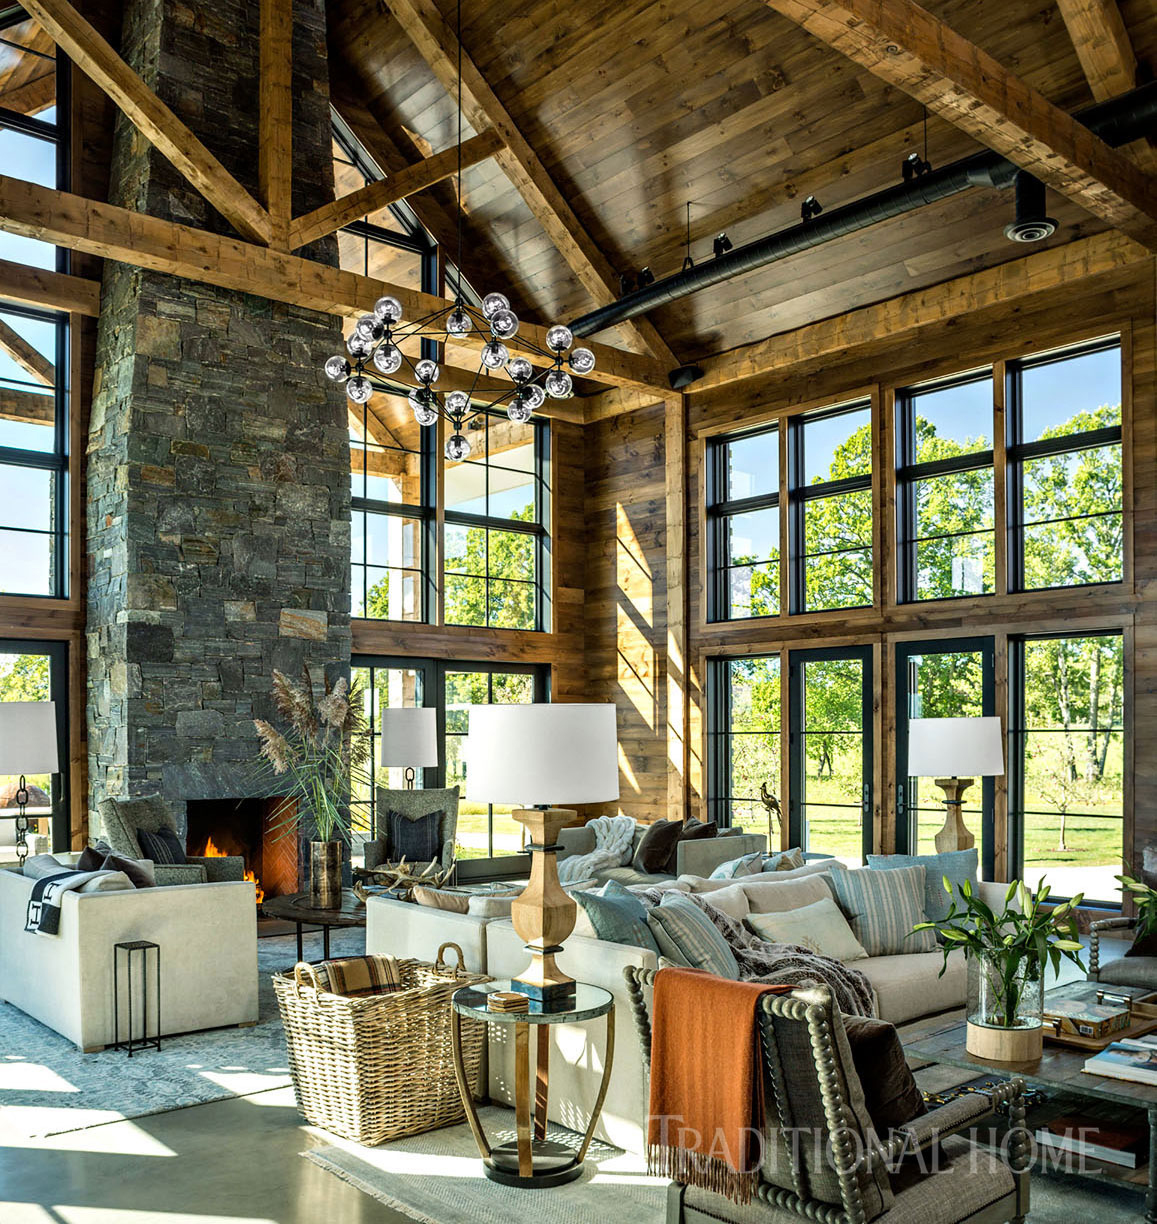 stone fireplace and wood ceiling beams